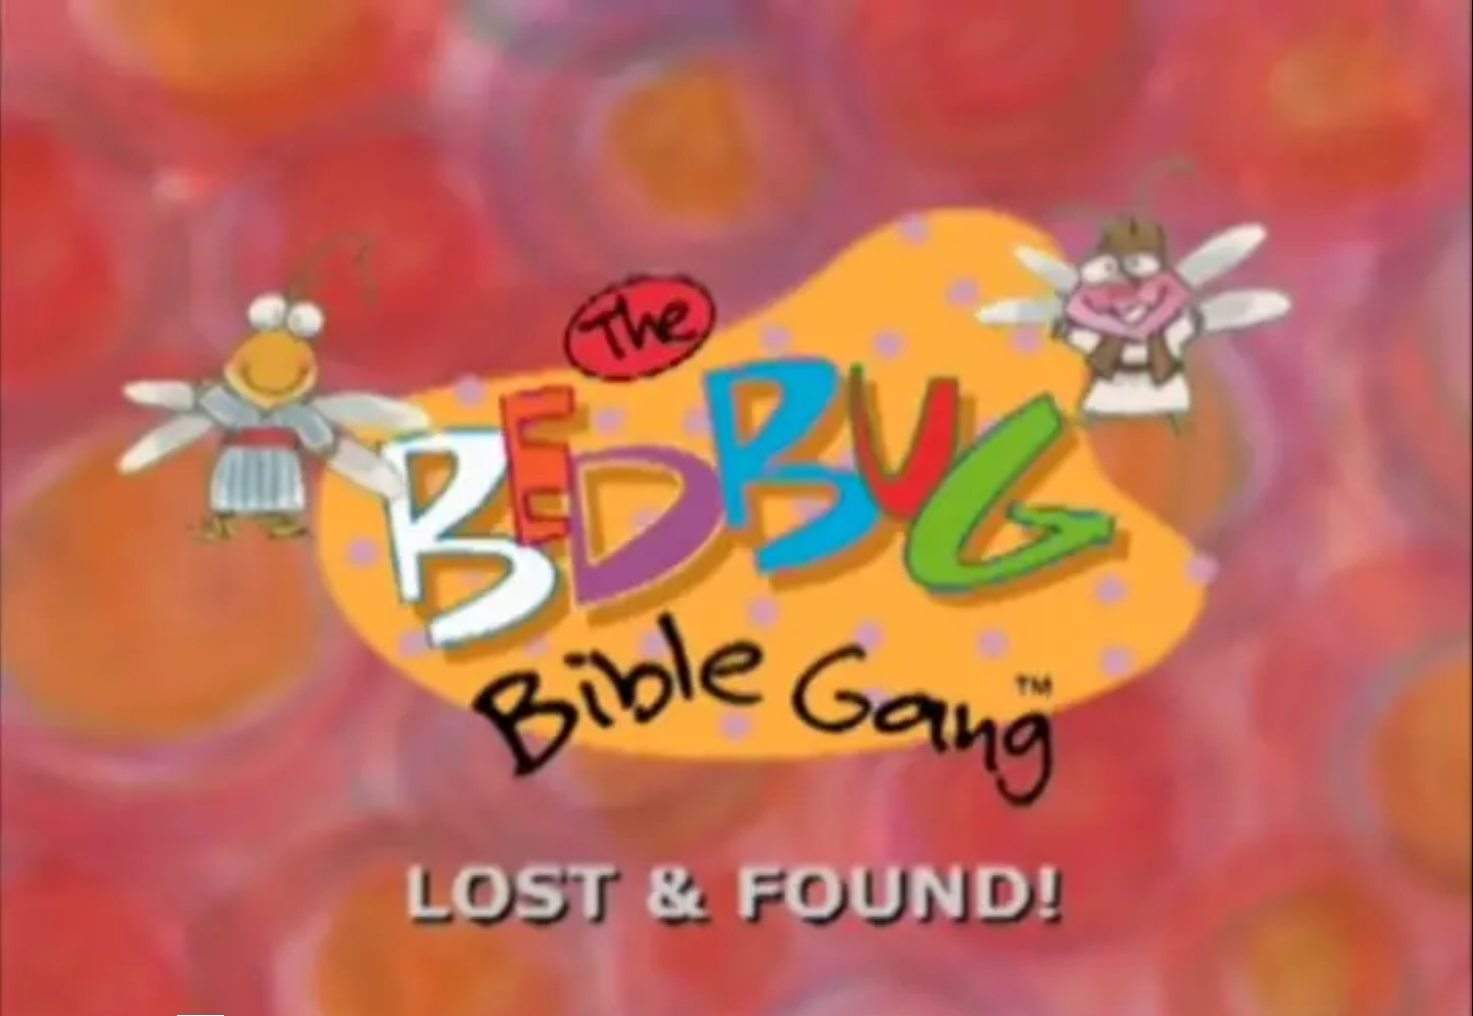 Bedbug Bible Gang - Lost And Found!